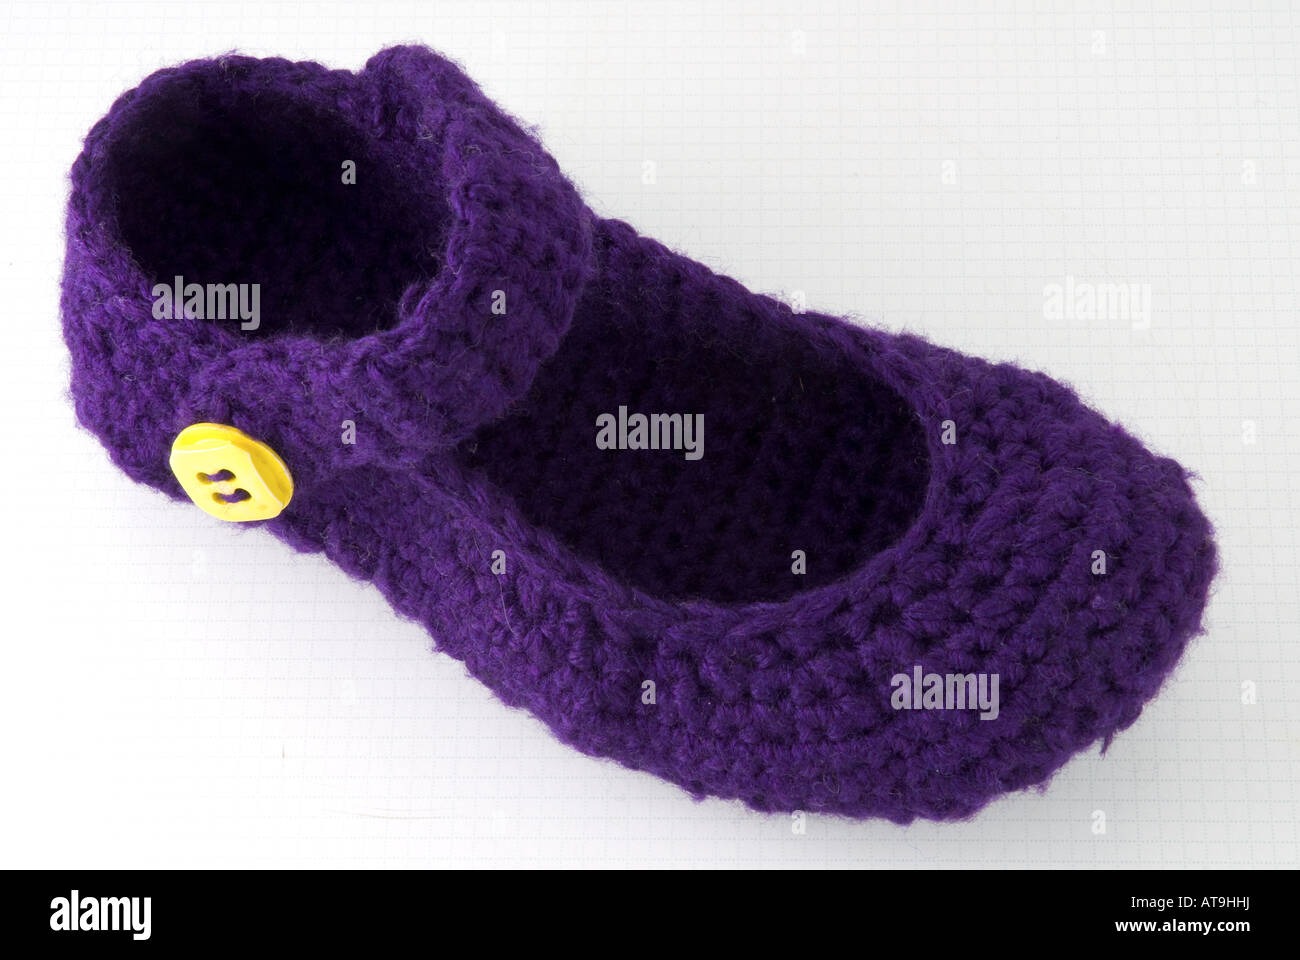 Right foot of crocheted Mary Jane slippers Stock Photo